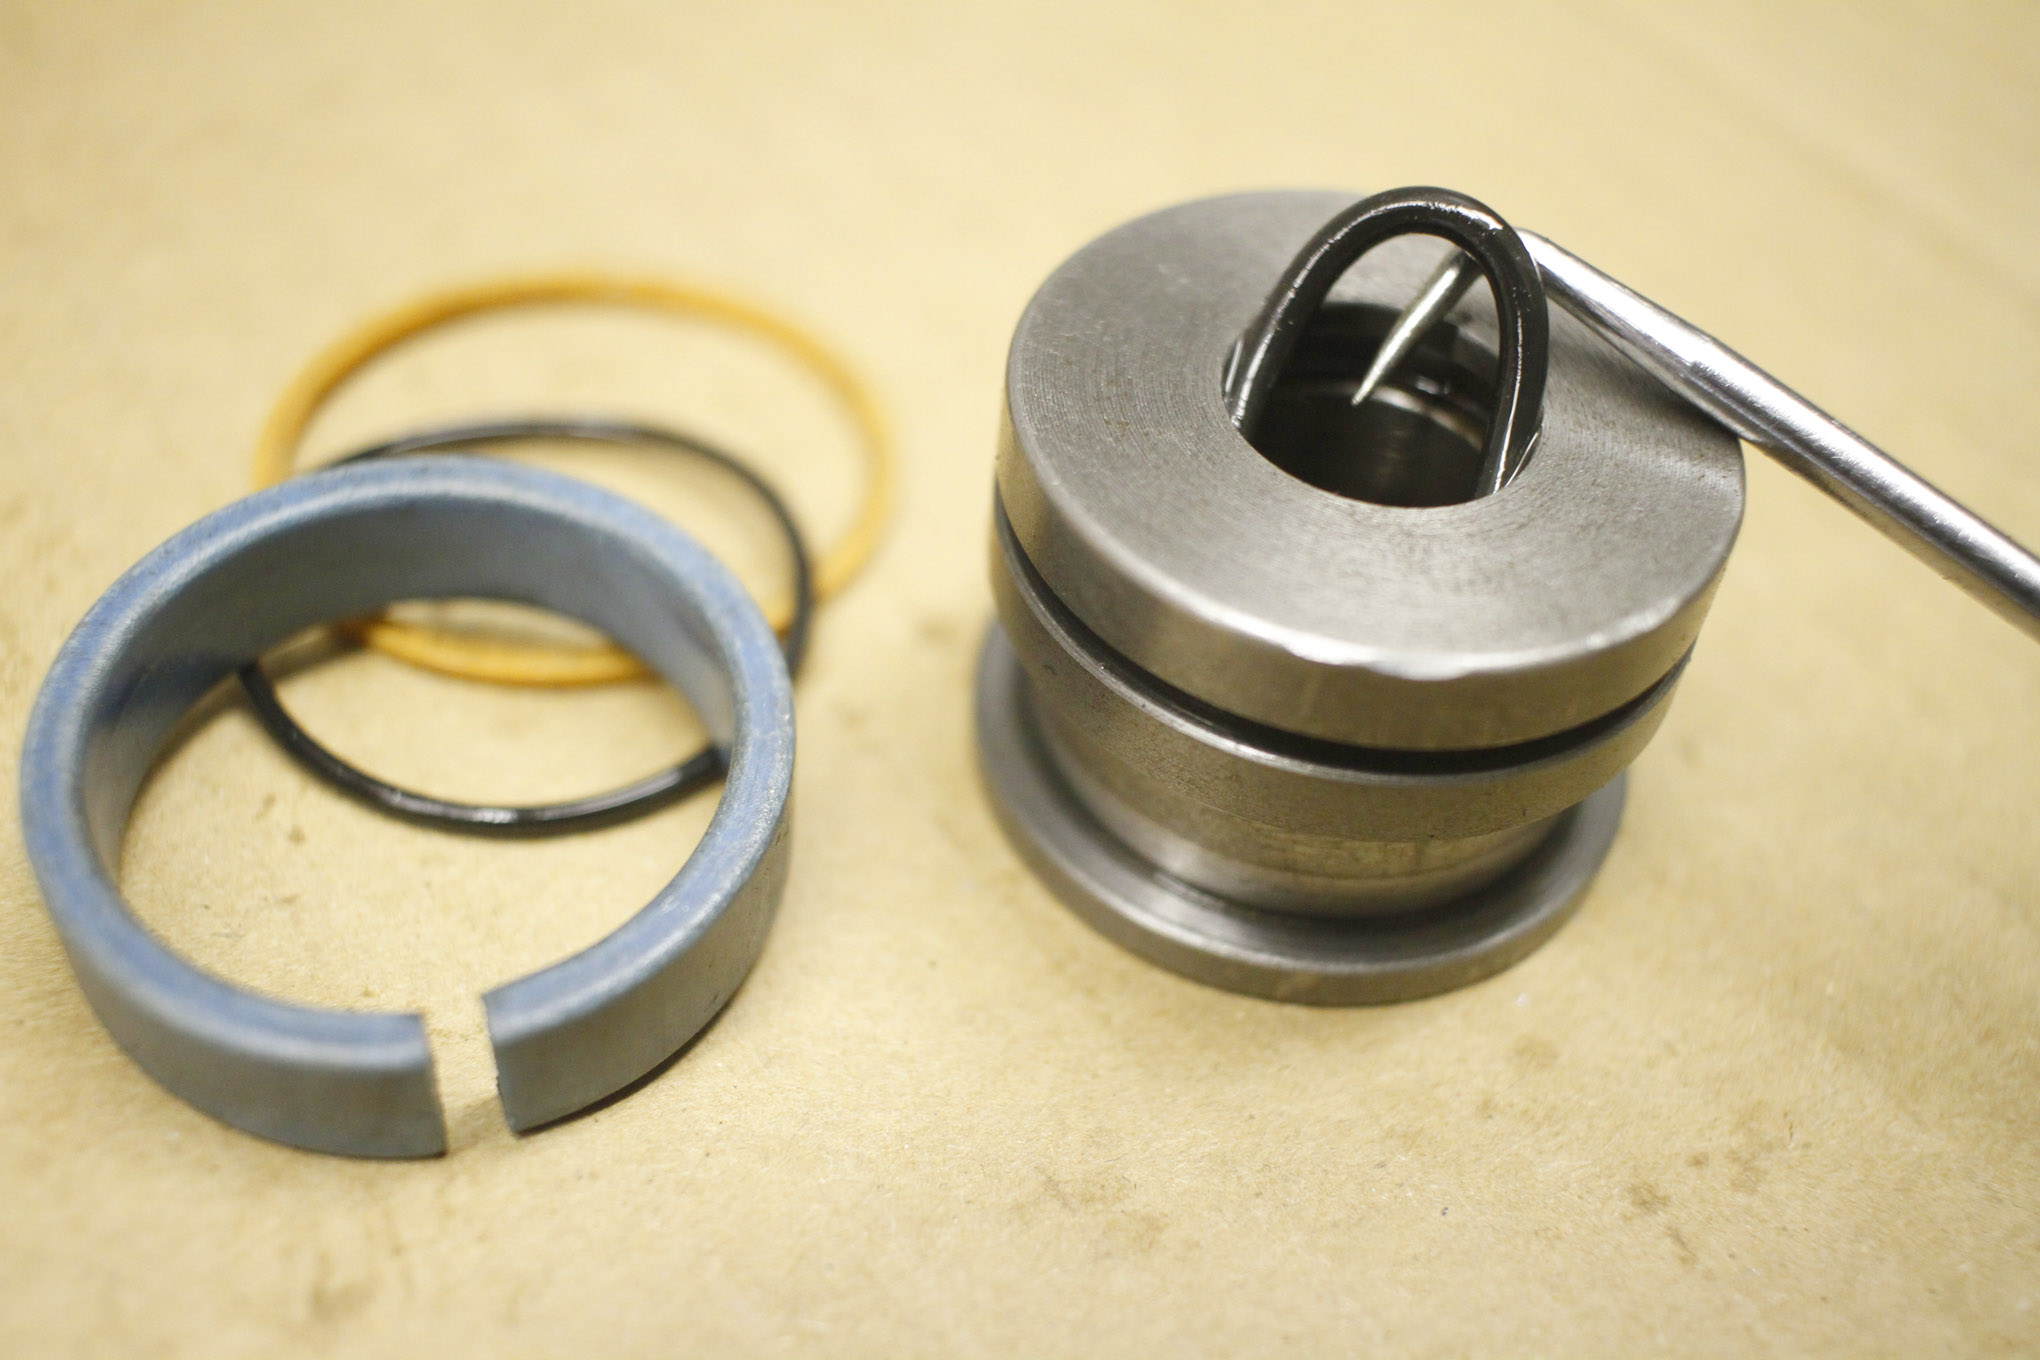 There are internal and external seals, which need to be removed from the piston assembly.